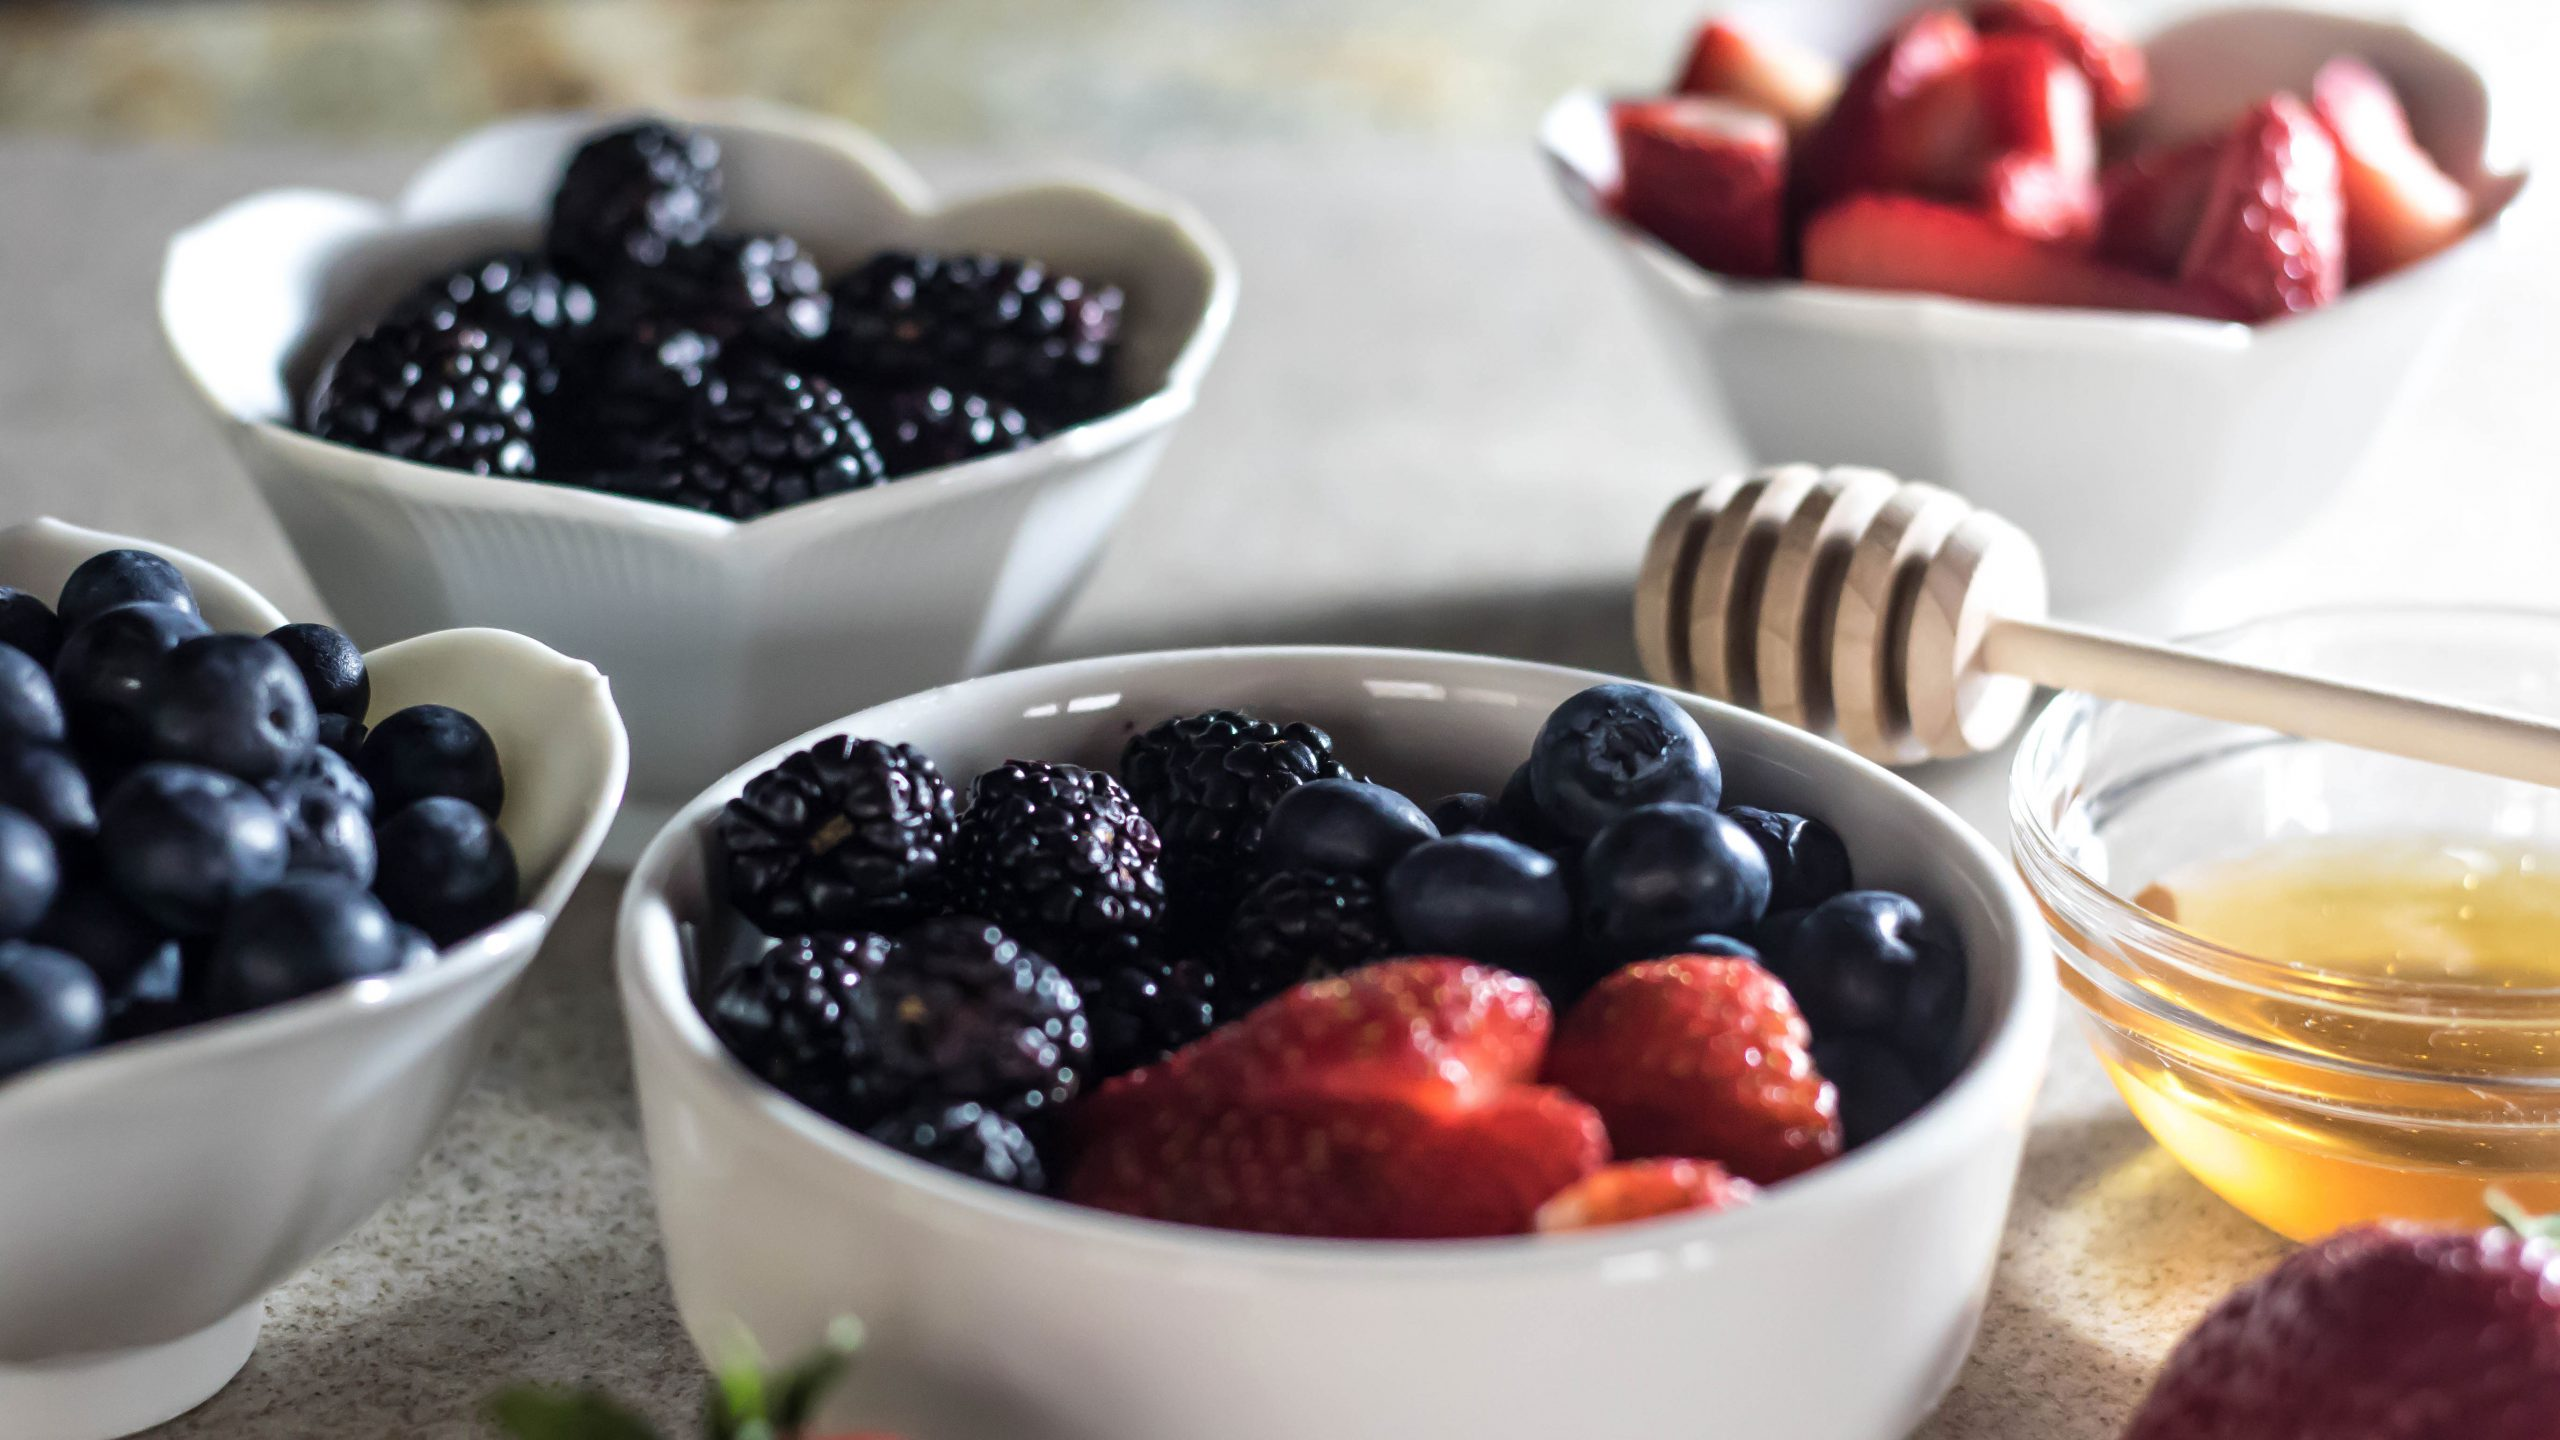 Fresh berries, whole cream, and raw honey make this simple treat delectable.